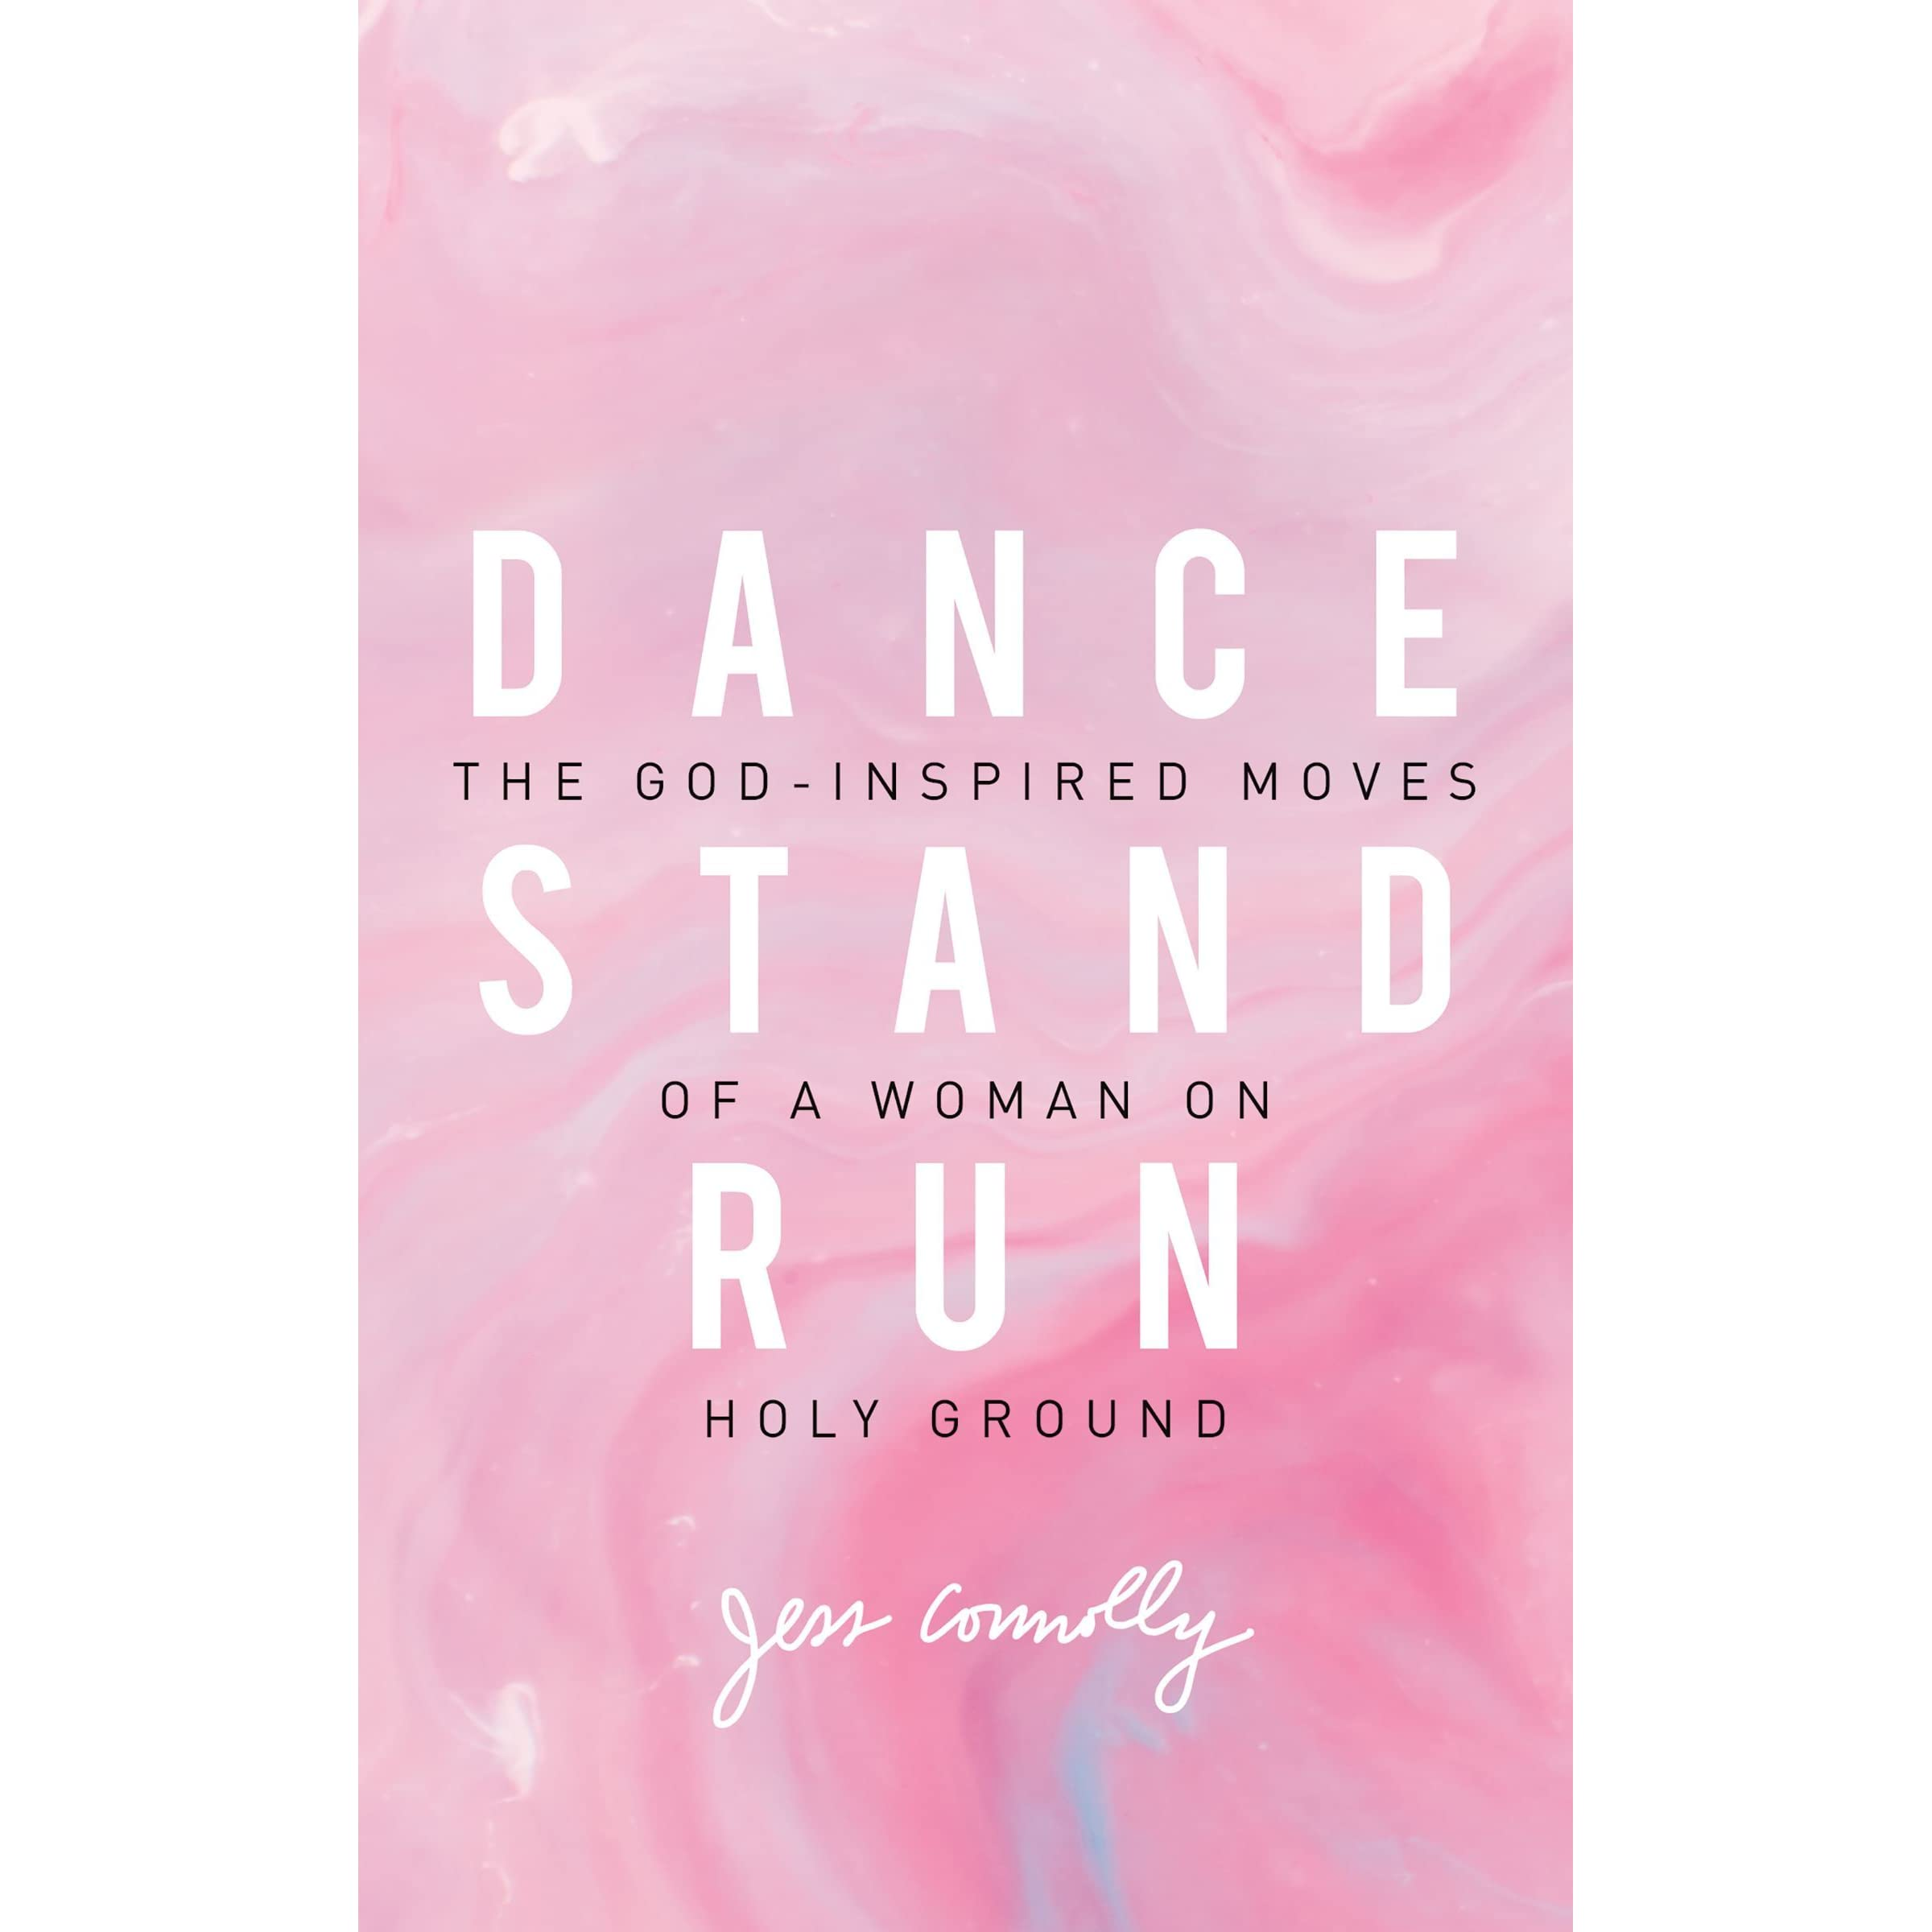 Dance, Stand, Run: The God-Inspired Moves of a Woman on Holy